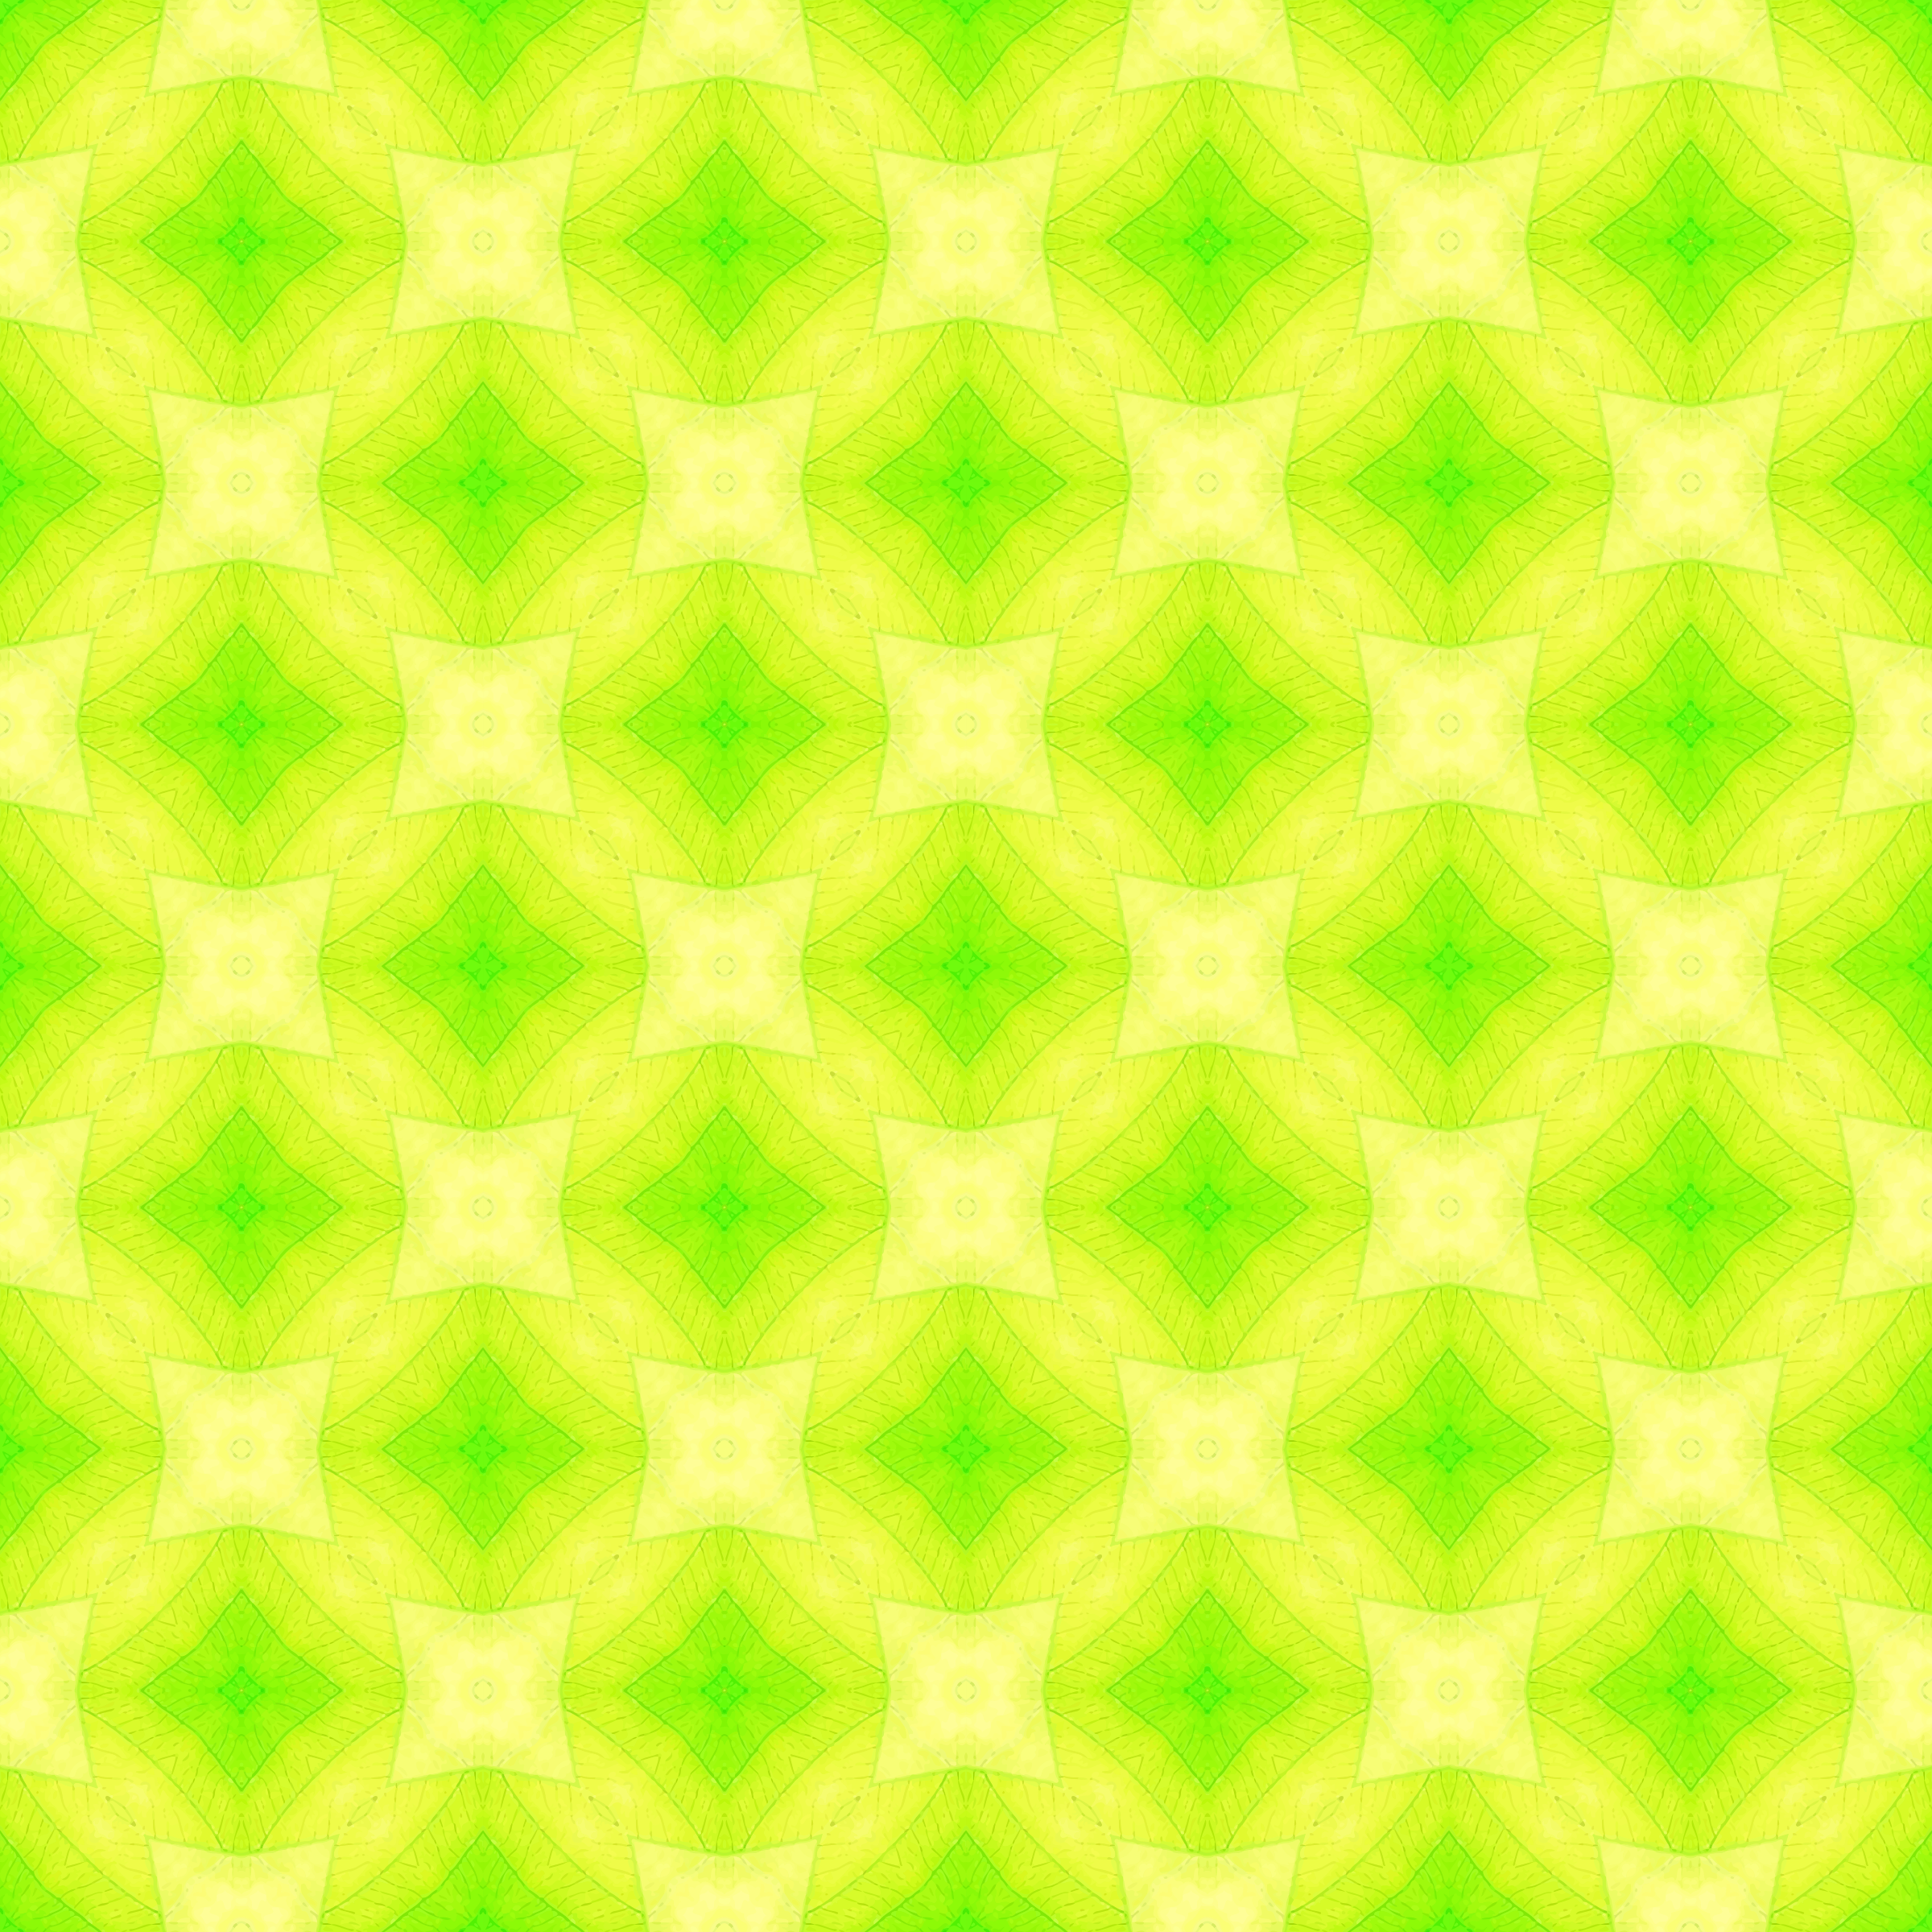 Background pattern 168 (colour 6) by Firkin